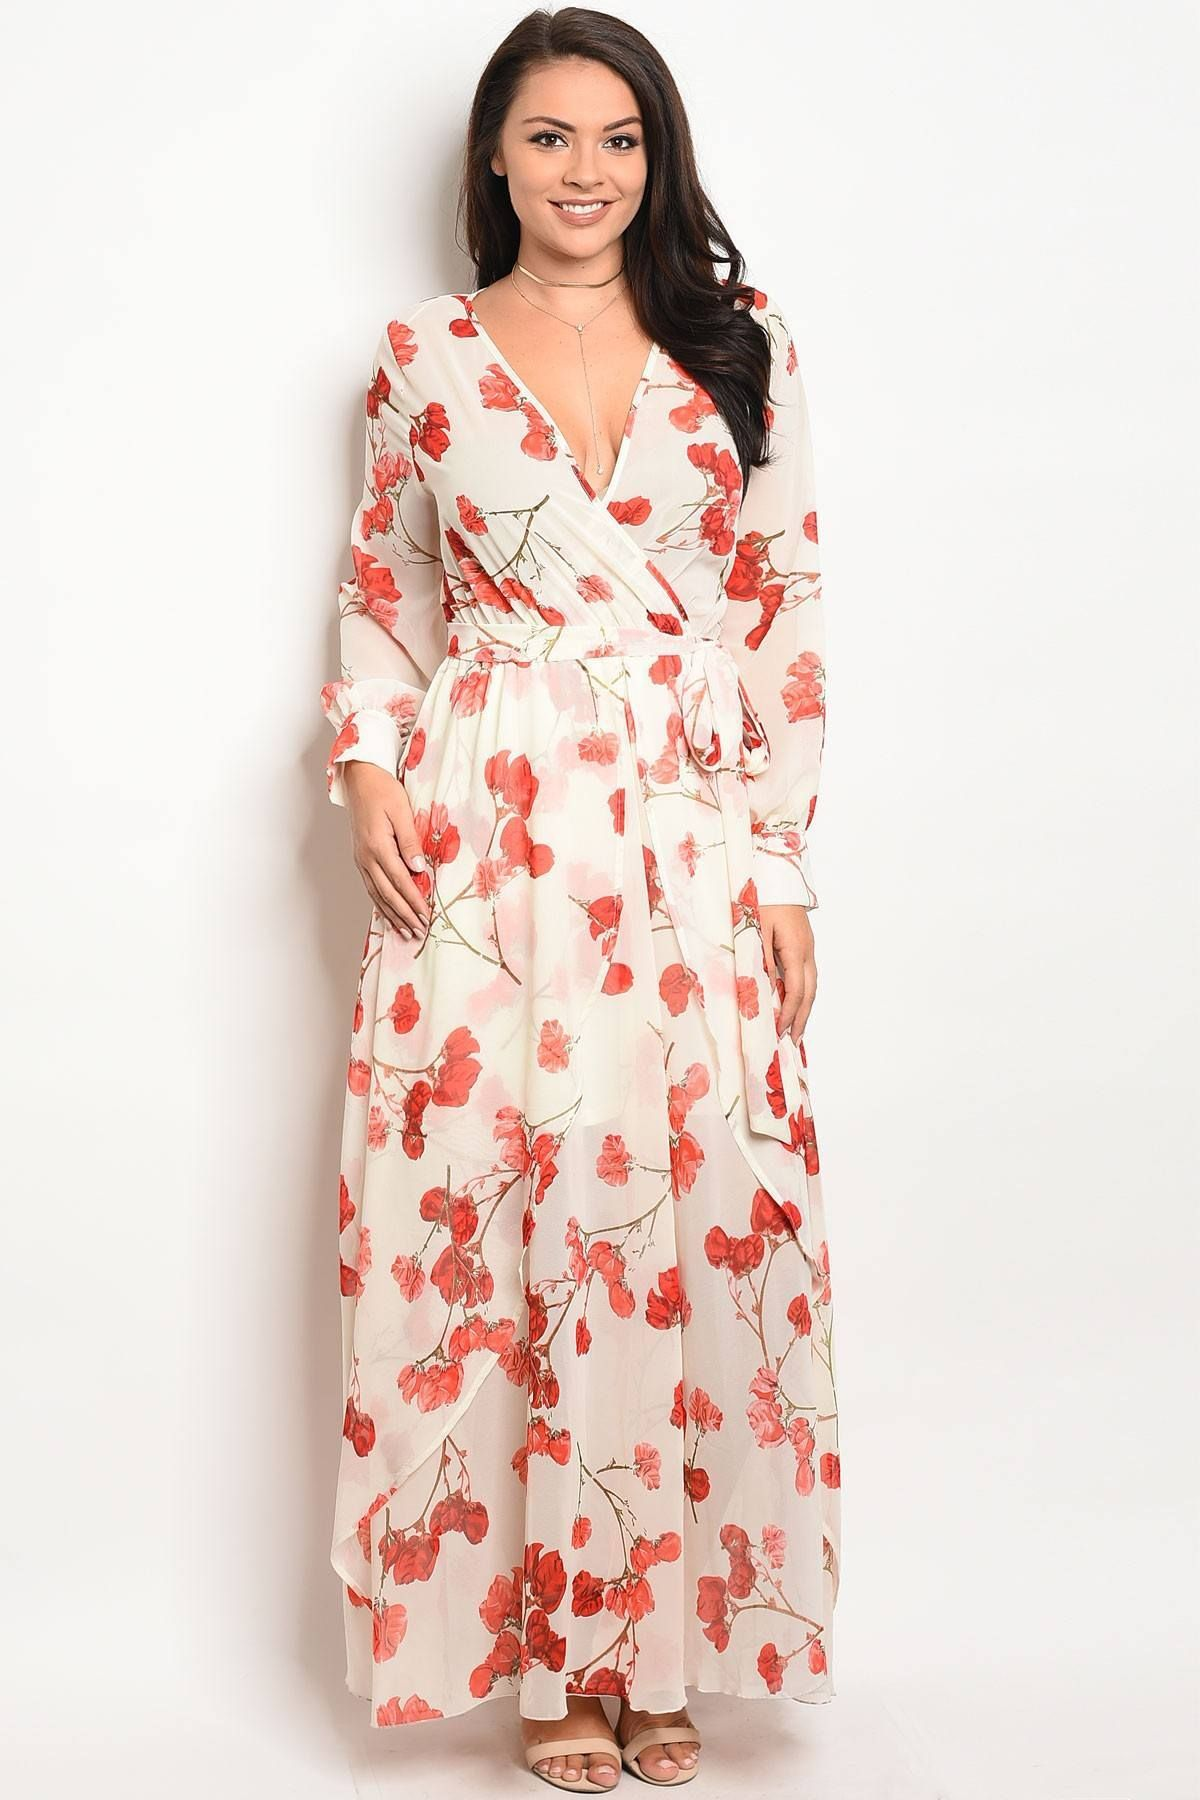 Ladies fashion plus size long sleeve printed chiffon maxi dress with